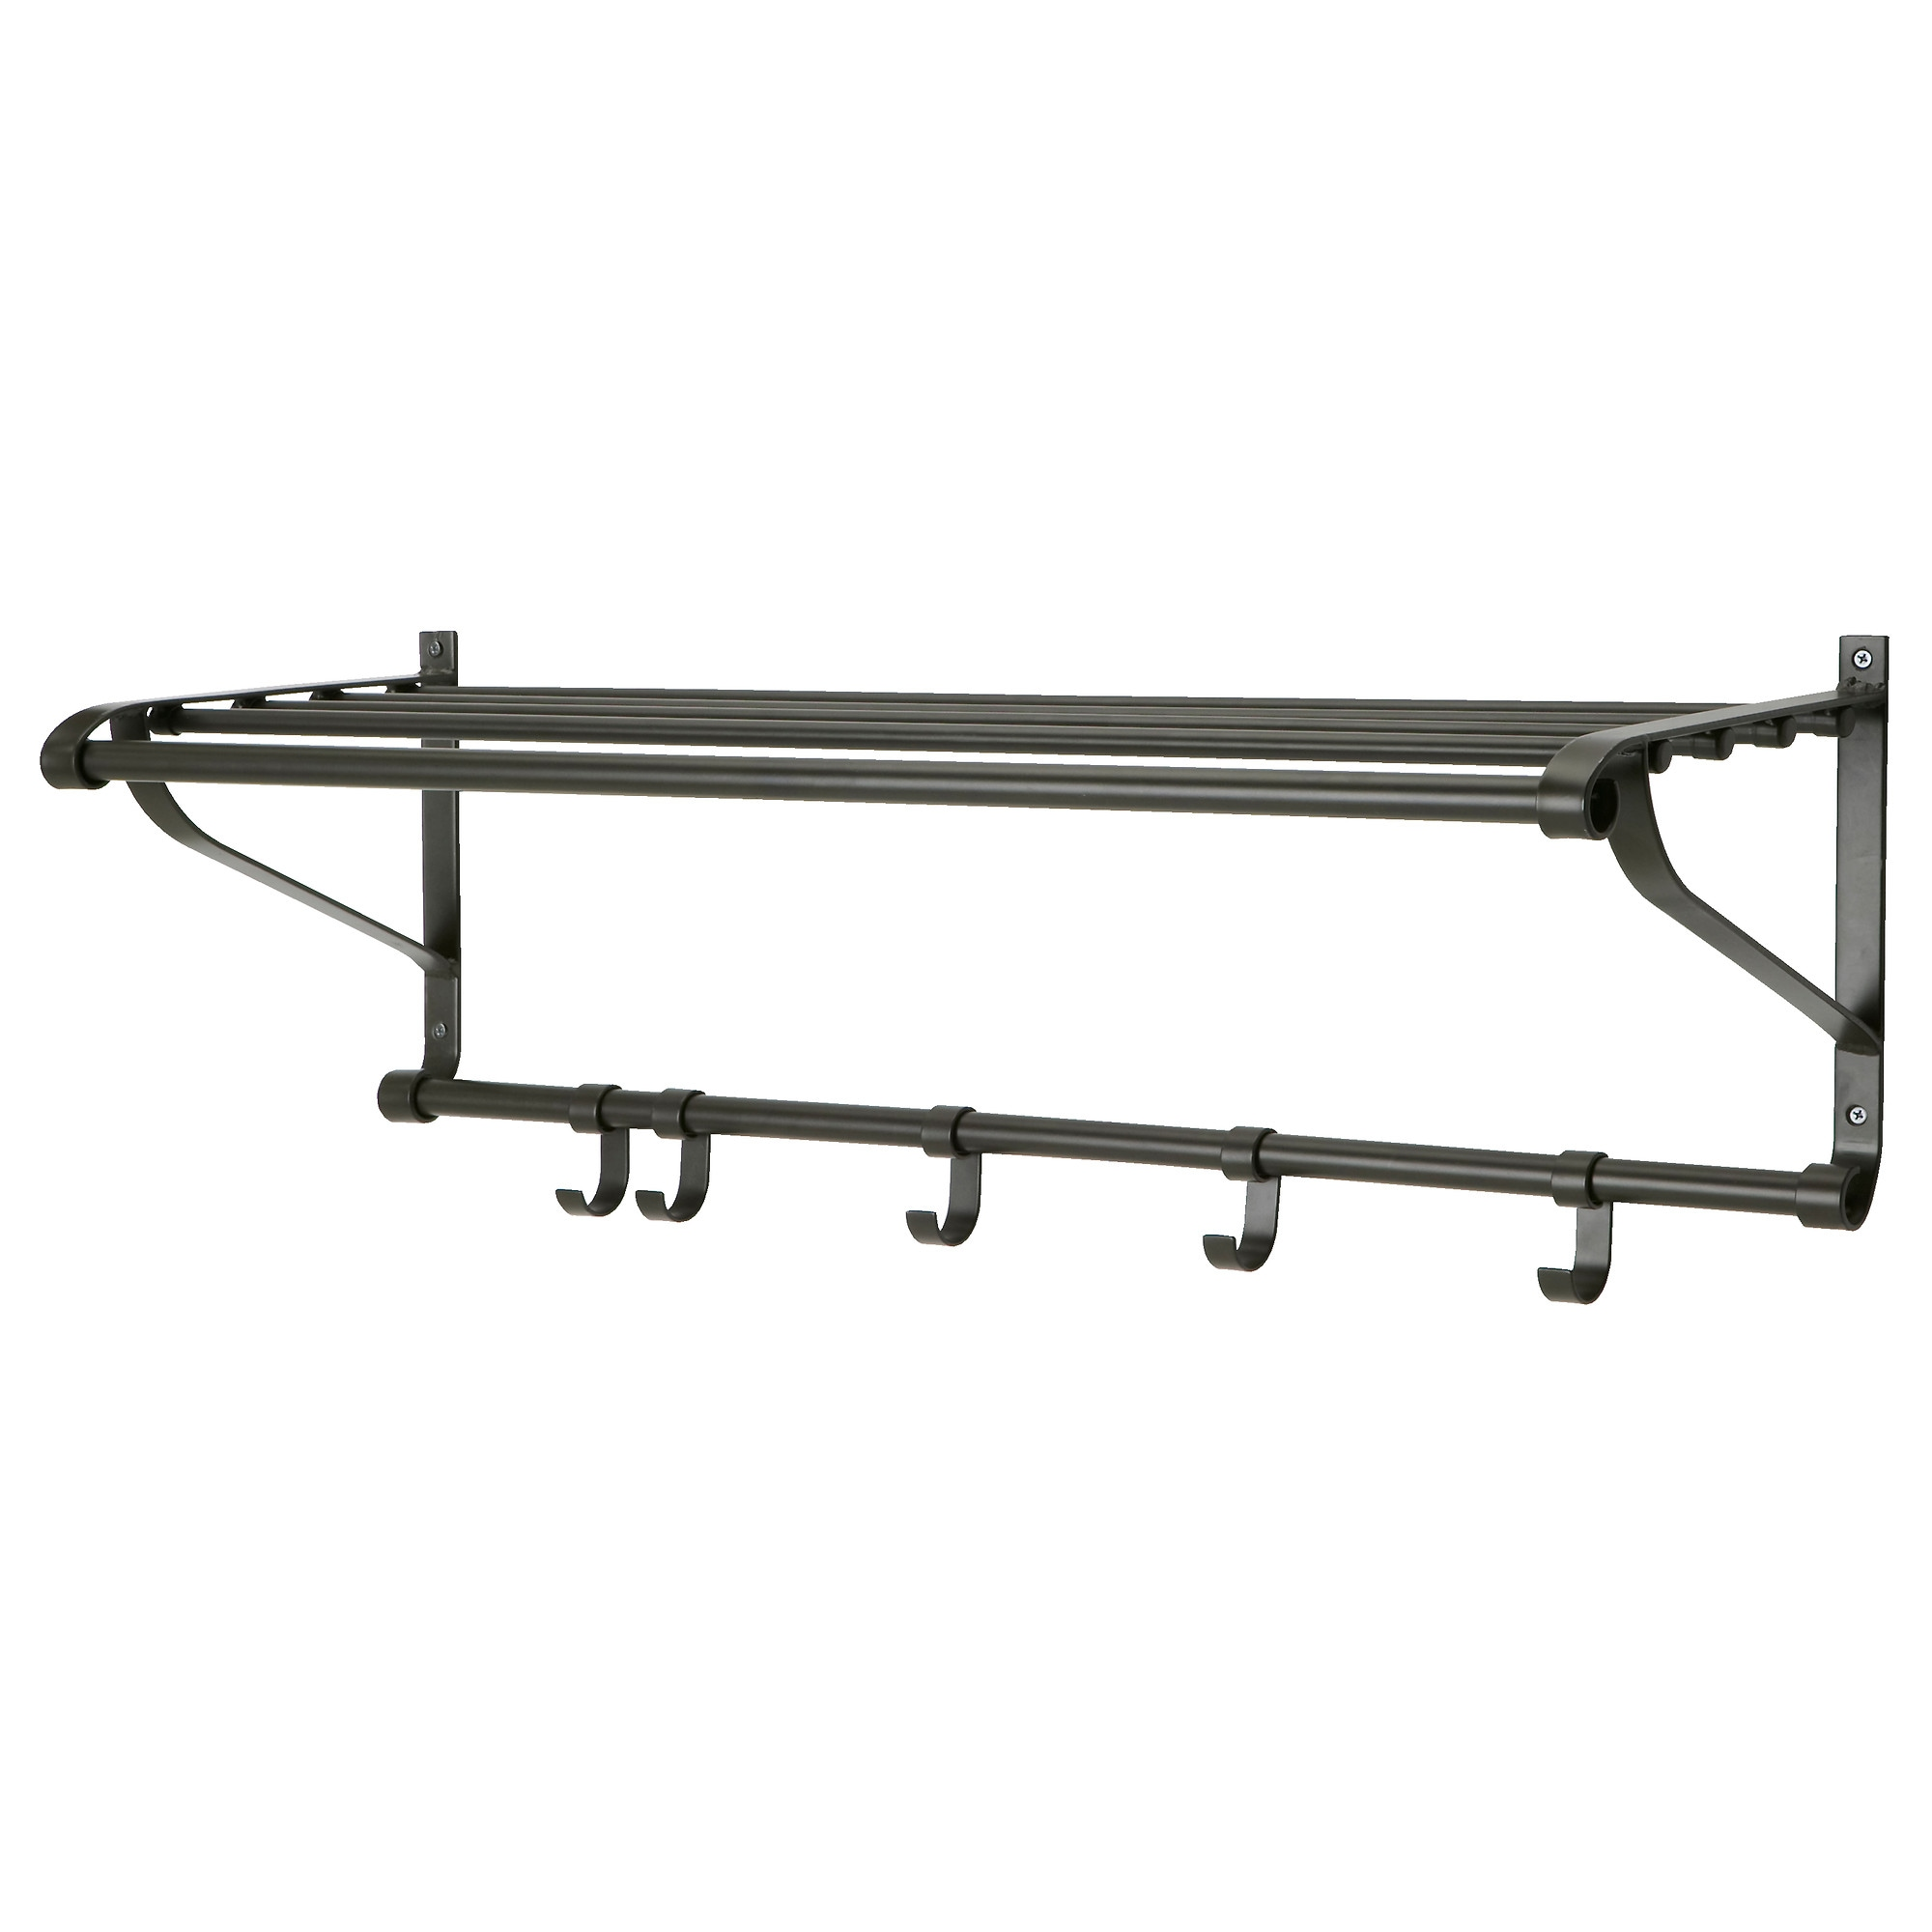 Coat Hooks Wall Mounted Ikea portis hat rack - ikea